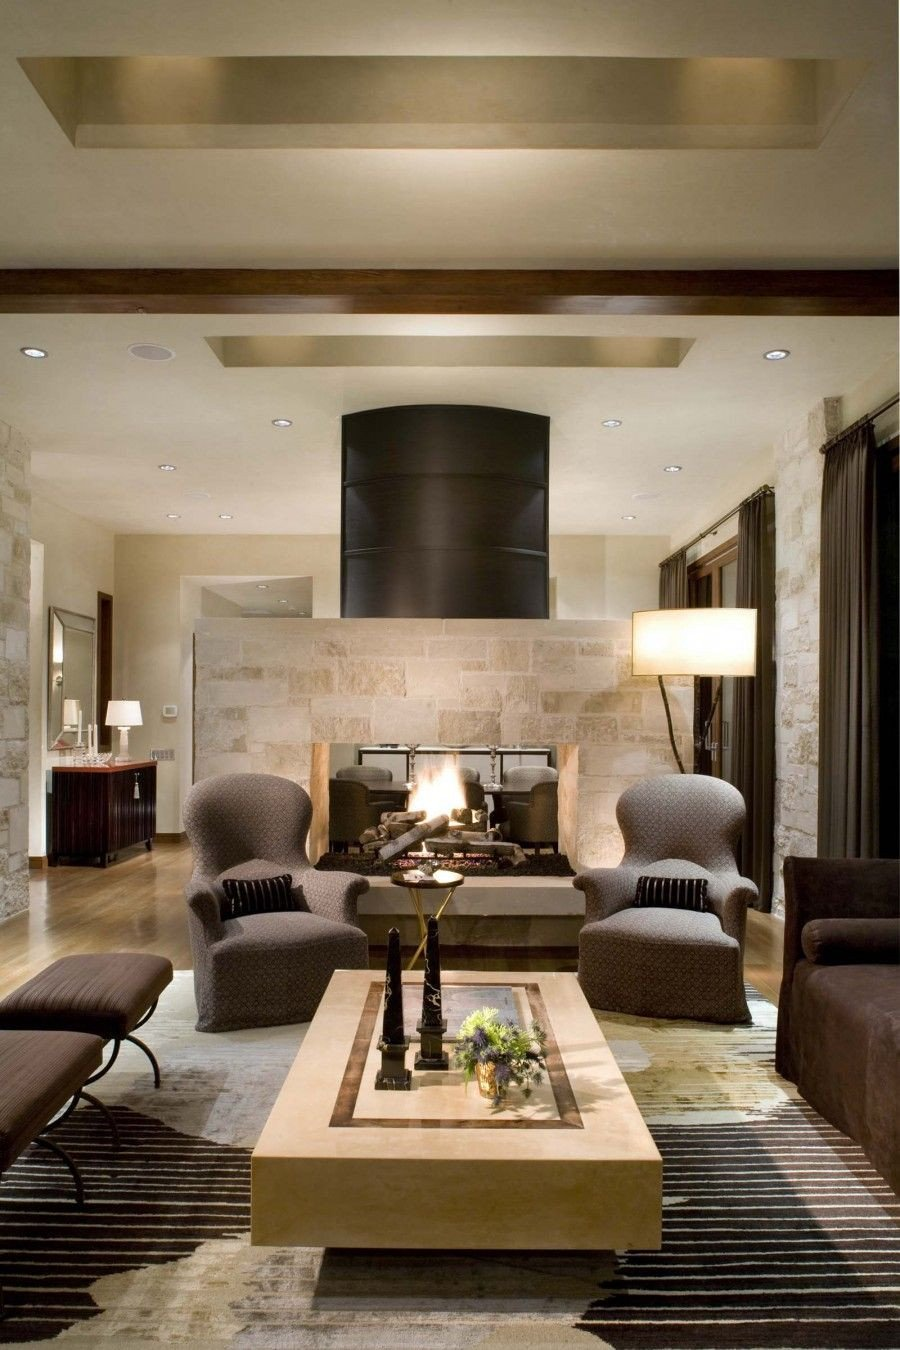 Ranch House Living Room Decorating Ideas Awesome 16 Fabulous Earth tones Living Room Designs Decoholic